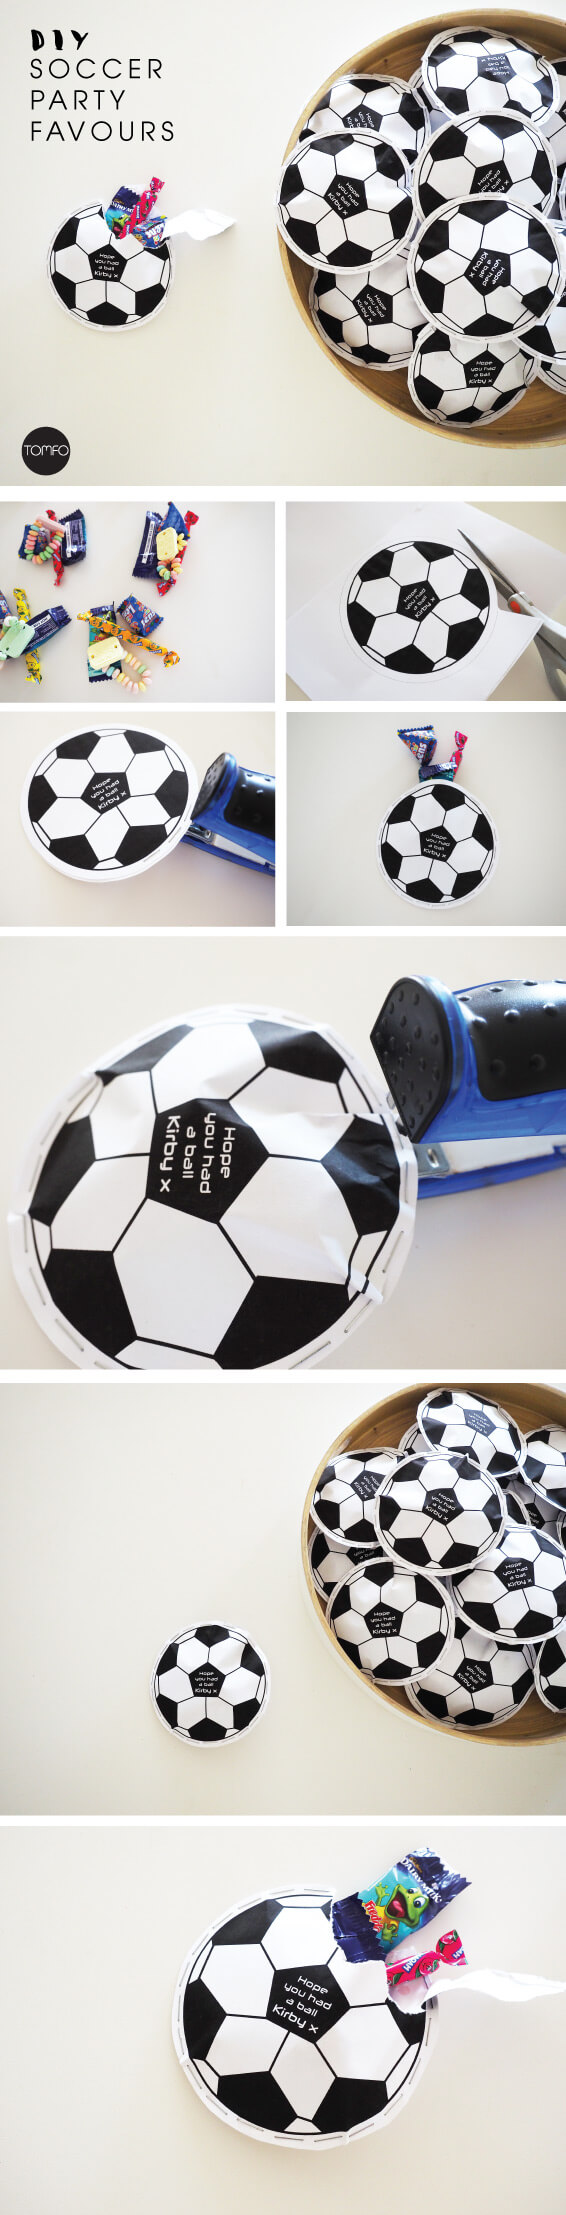 Soccer-Party-Favours--Printable-Tutorial-Tomfo